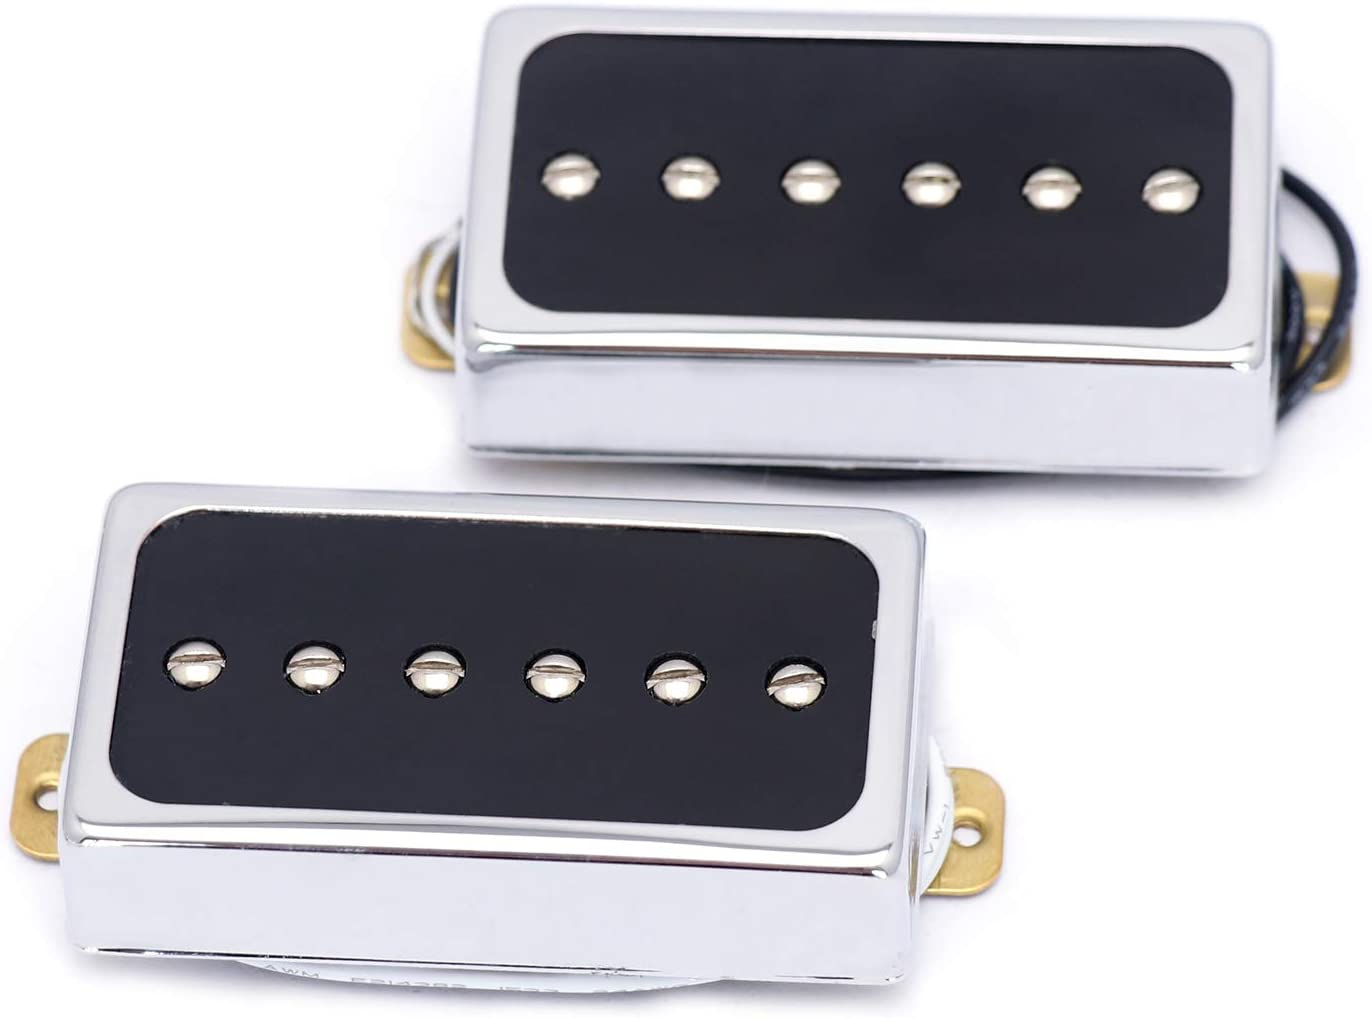 Metallor Humbucker Style Pickups Bridge and Neck Set for Les Paul P90 Style Electric Guitar. (CR)